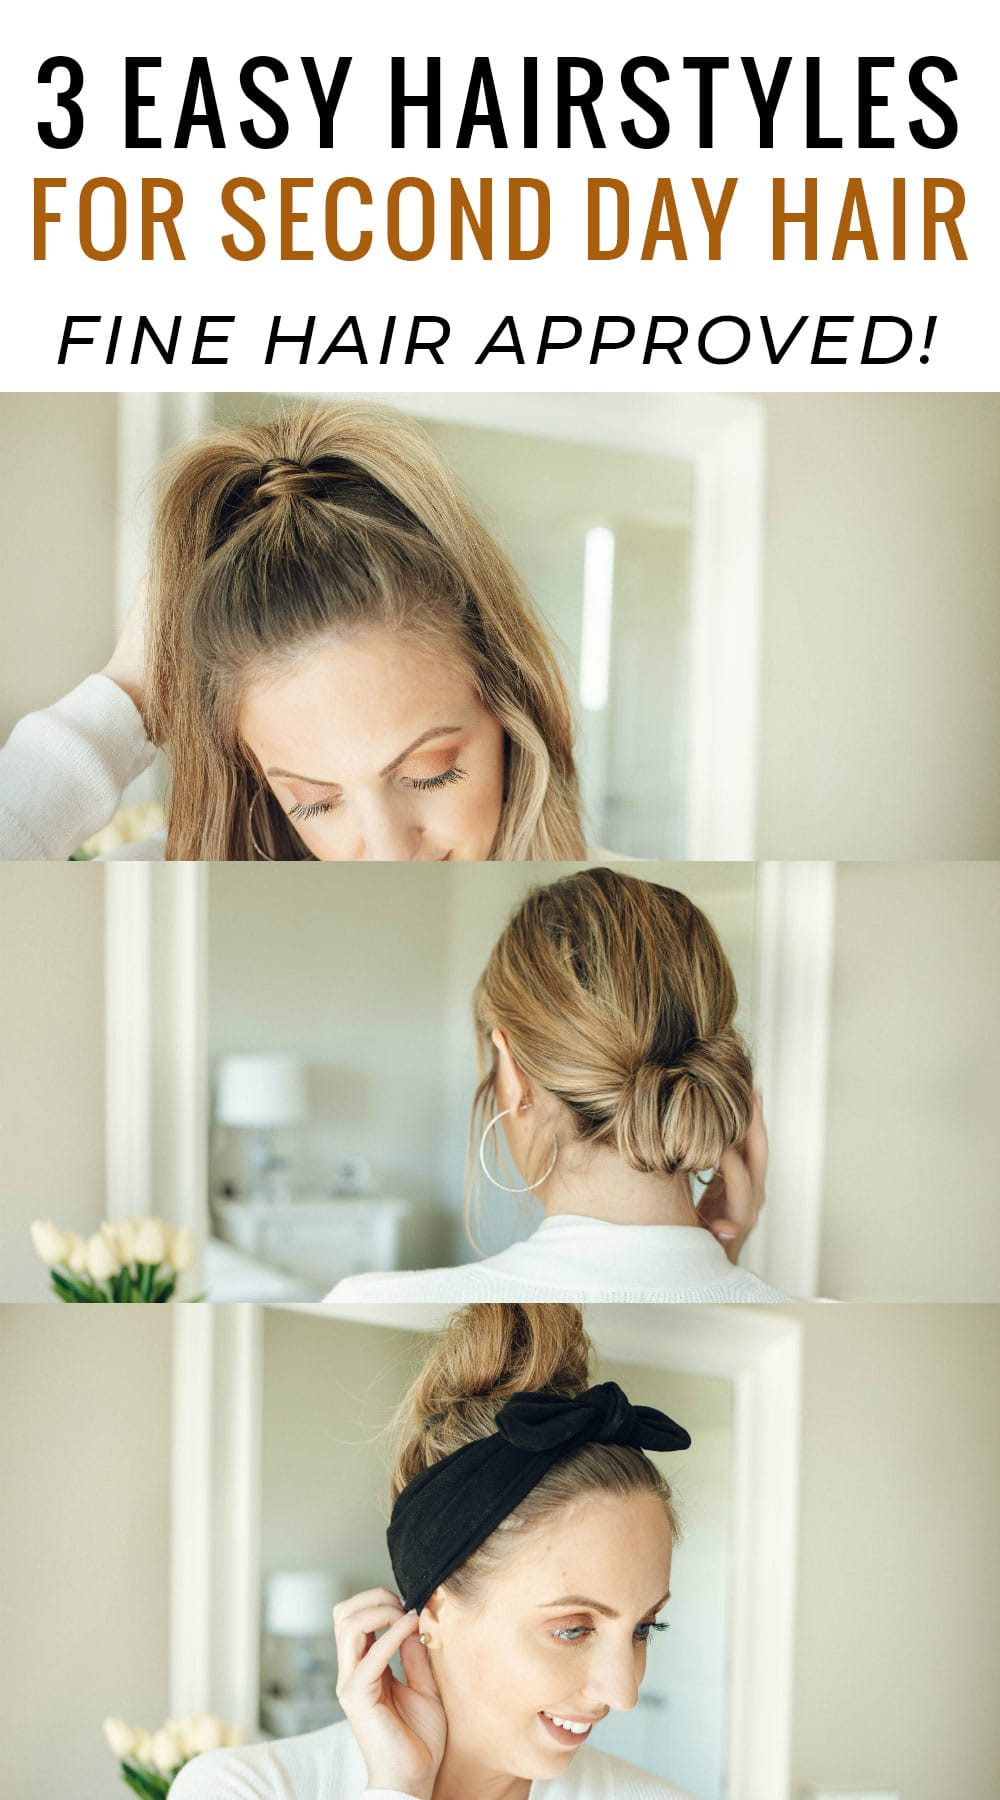 3 Easy Hairstyles for Second Day Hair (and beyond) - Fine ...